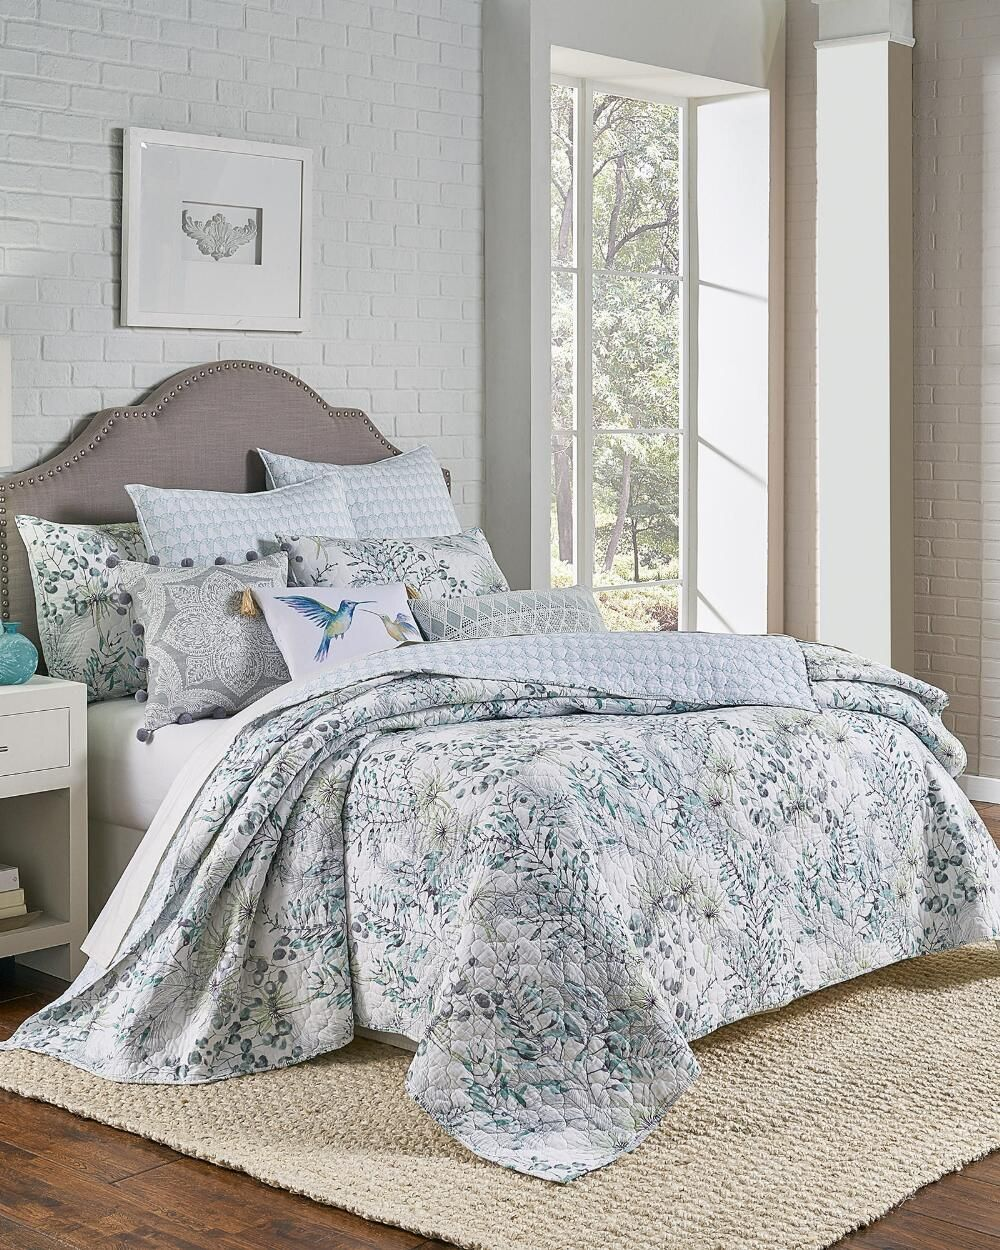 Exclusively Ours Larkin Luxury Quilt Luxury Quilts Quilt Sets Bedding Quilt Bedding